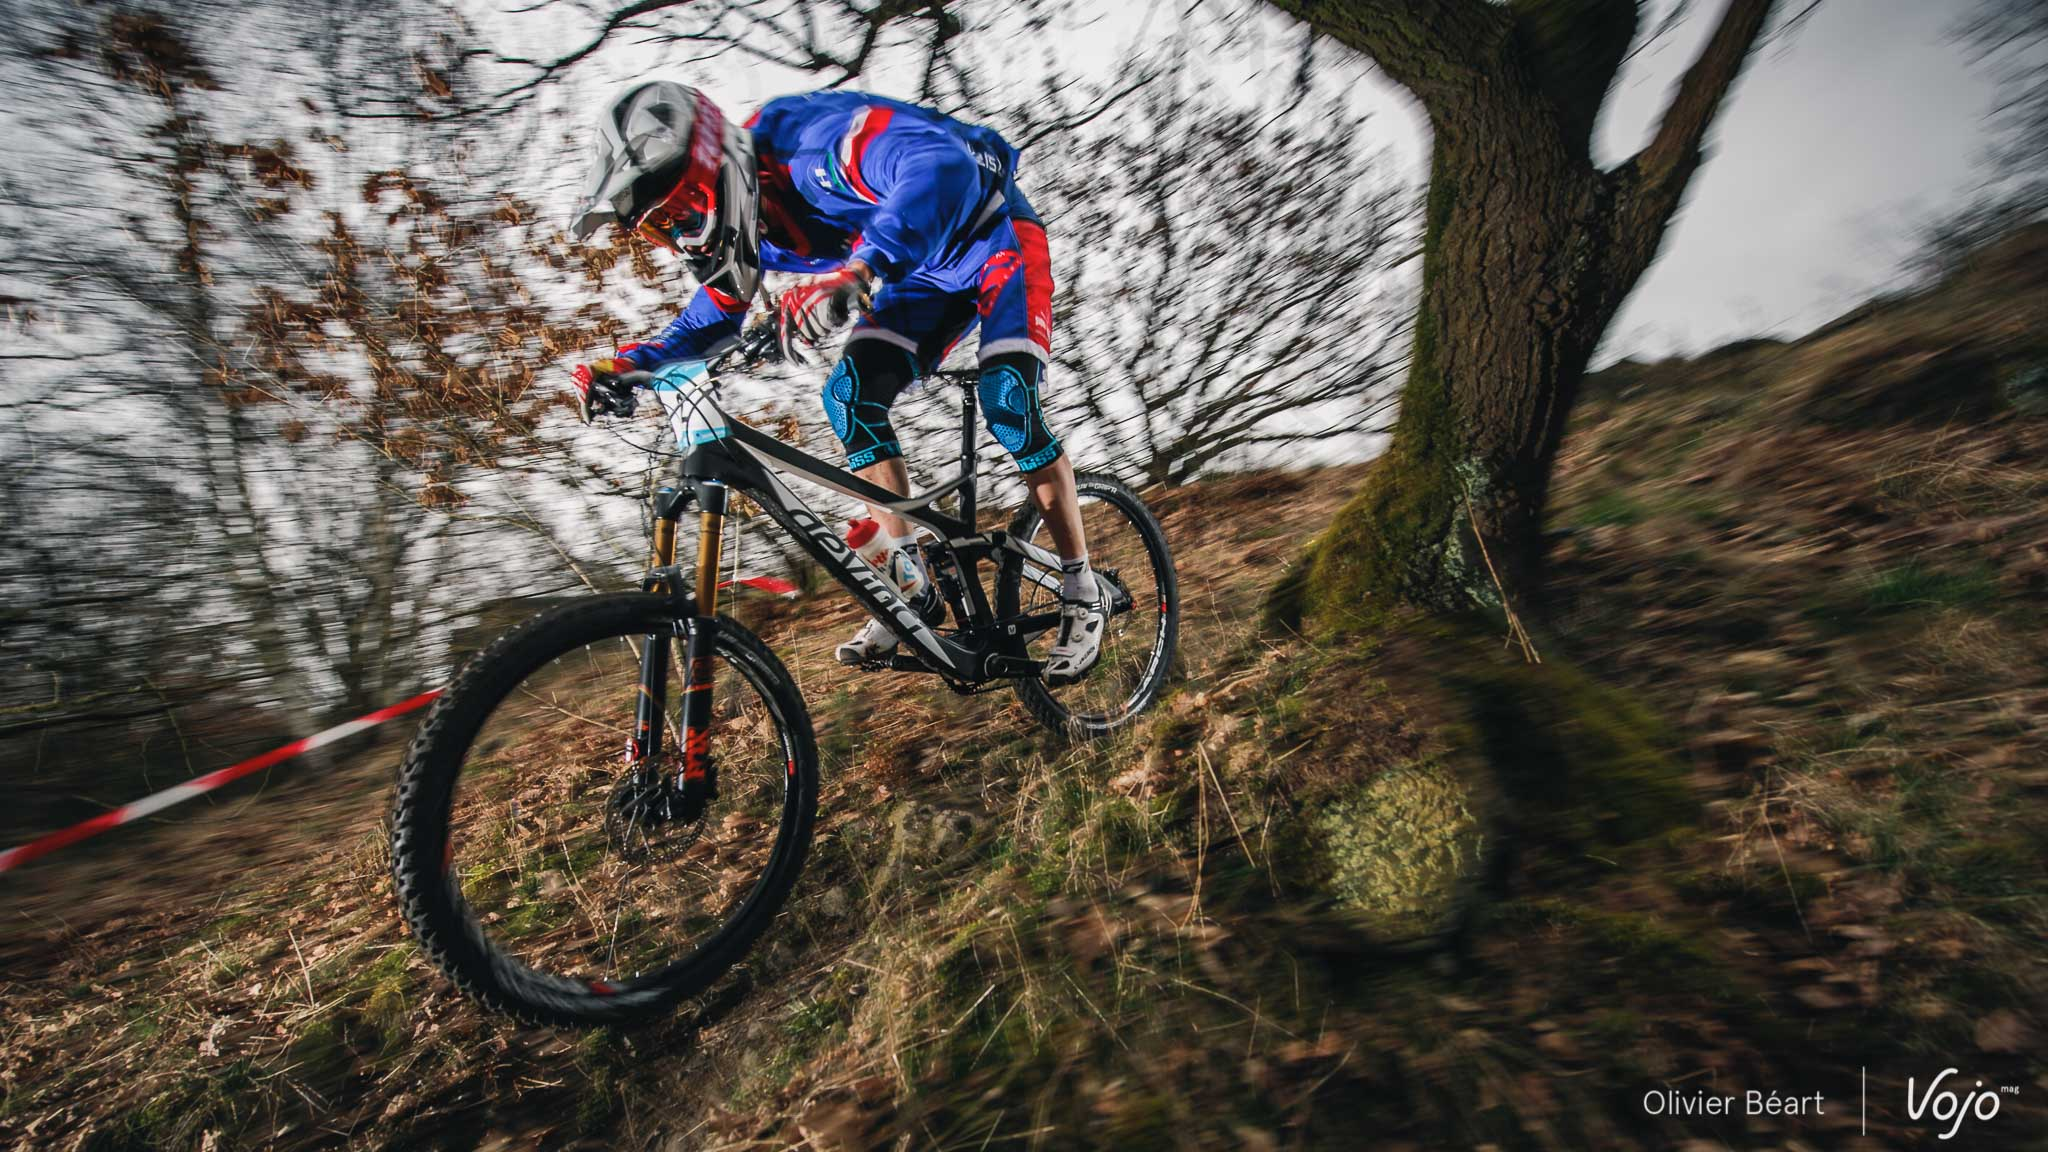 Belgian_Enduro_Cup_Chaudfontaine_2016_Copyright_OBeart_Vojomag-25